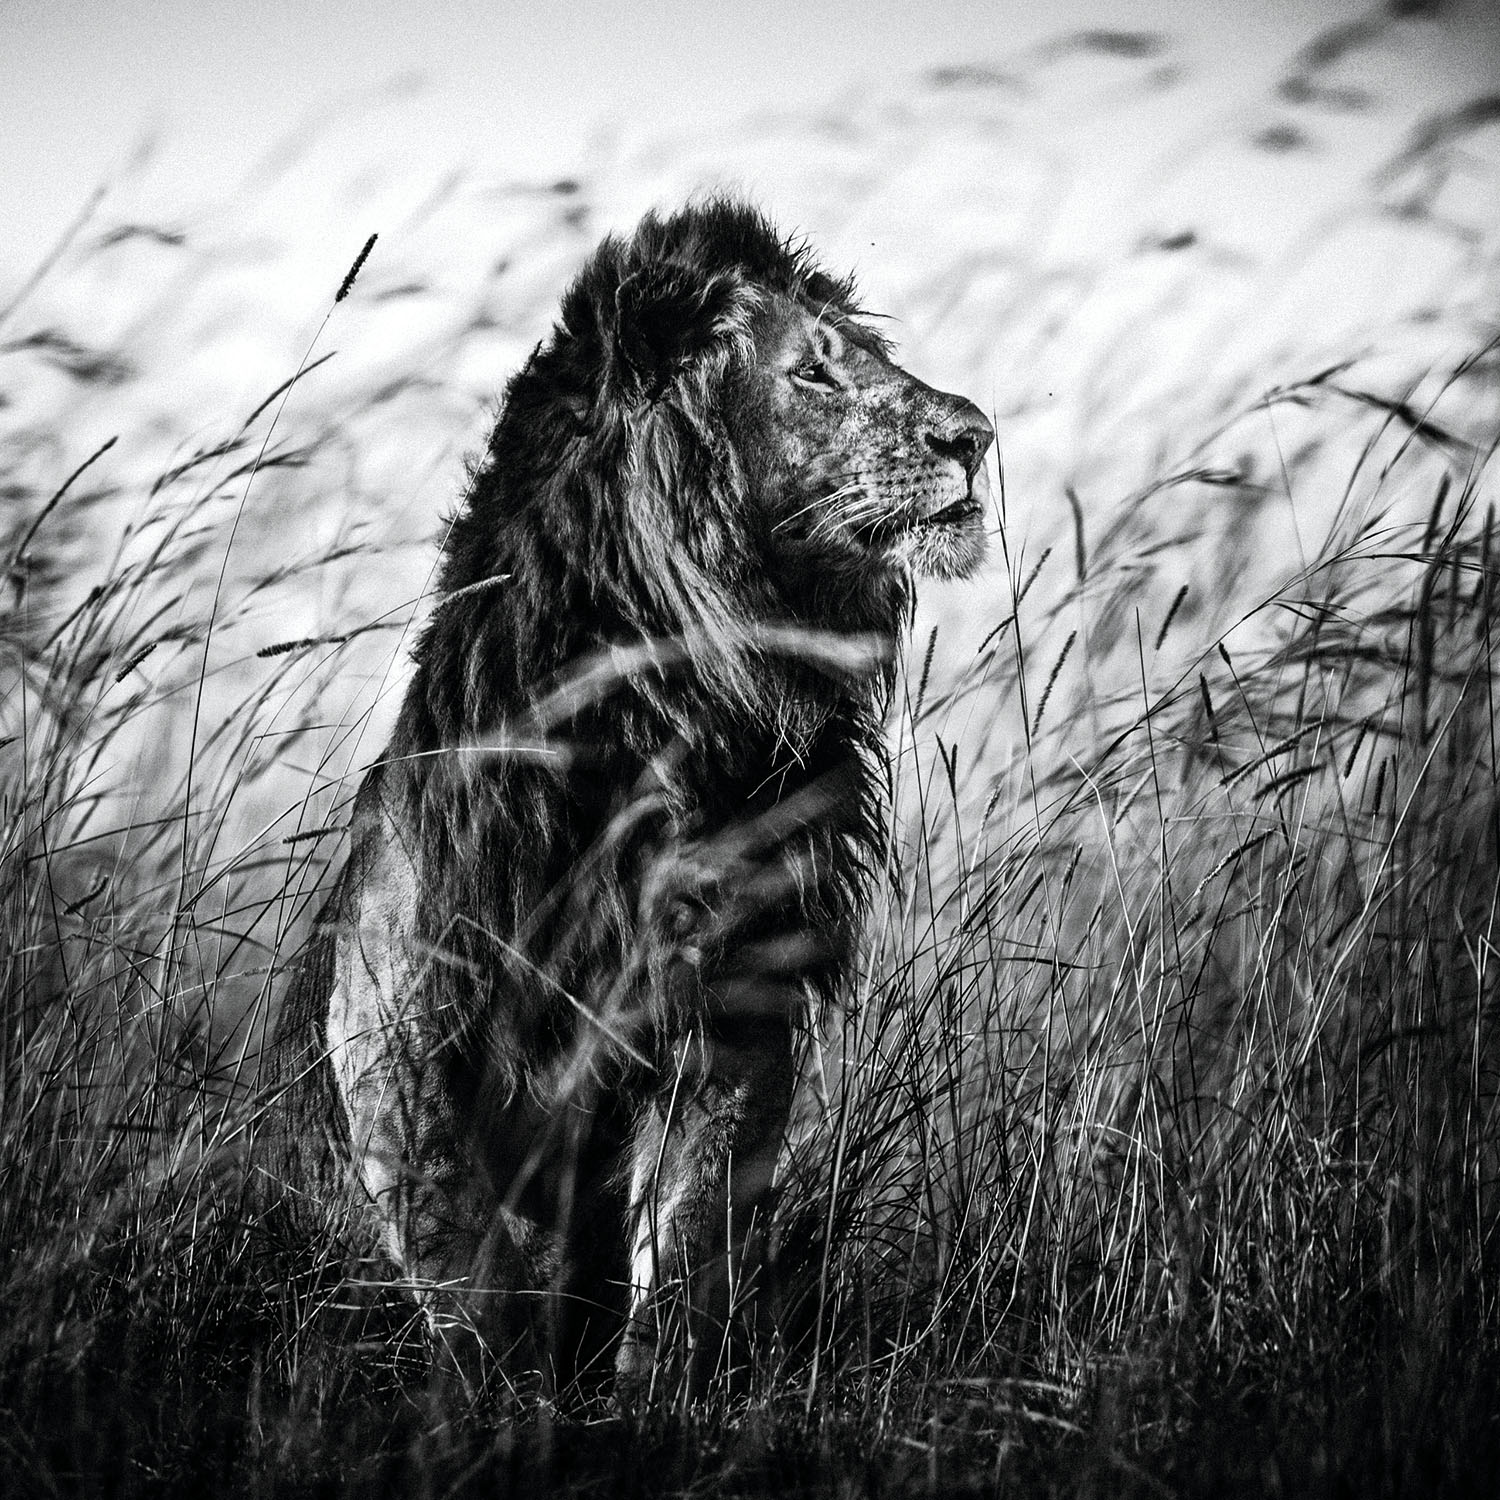 The Family Album of Wild Africa; Lion in the Grass